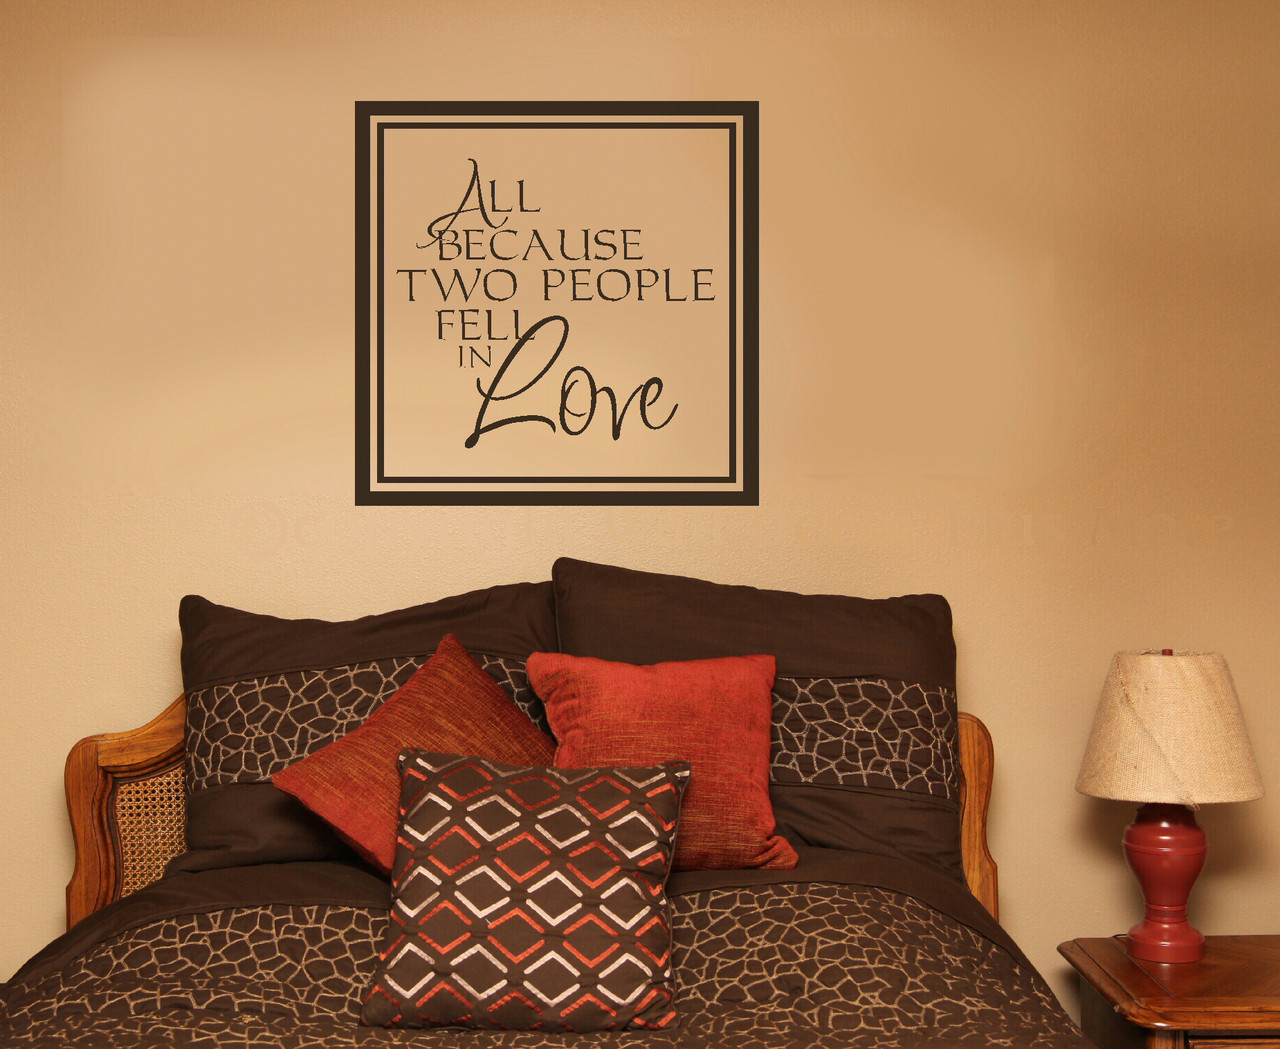 Bedroom wall art quotes - All Because Two People Fell In Love Quotes Wall Sticker Decals Sayings